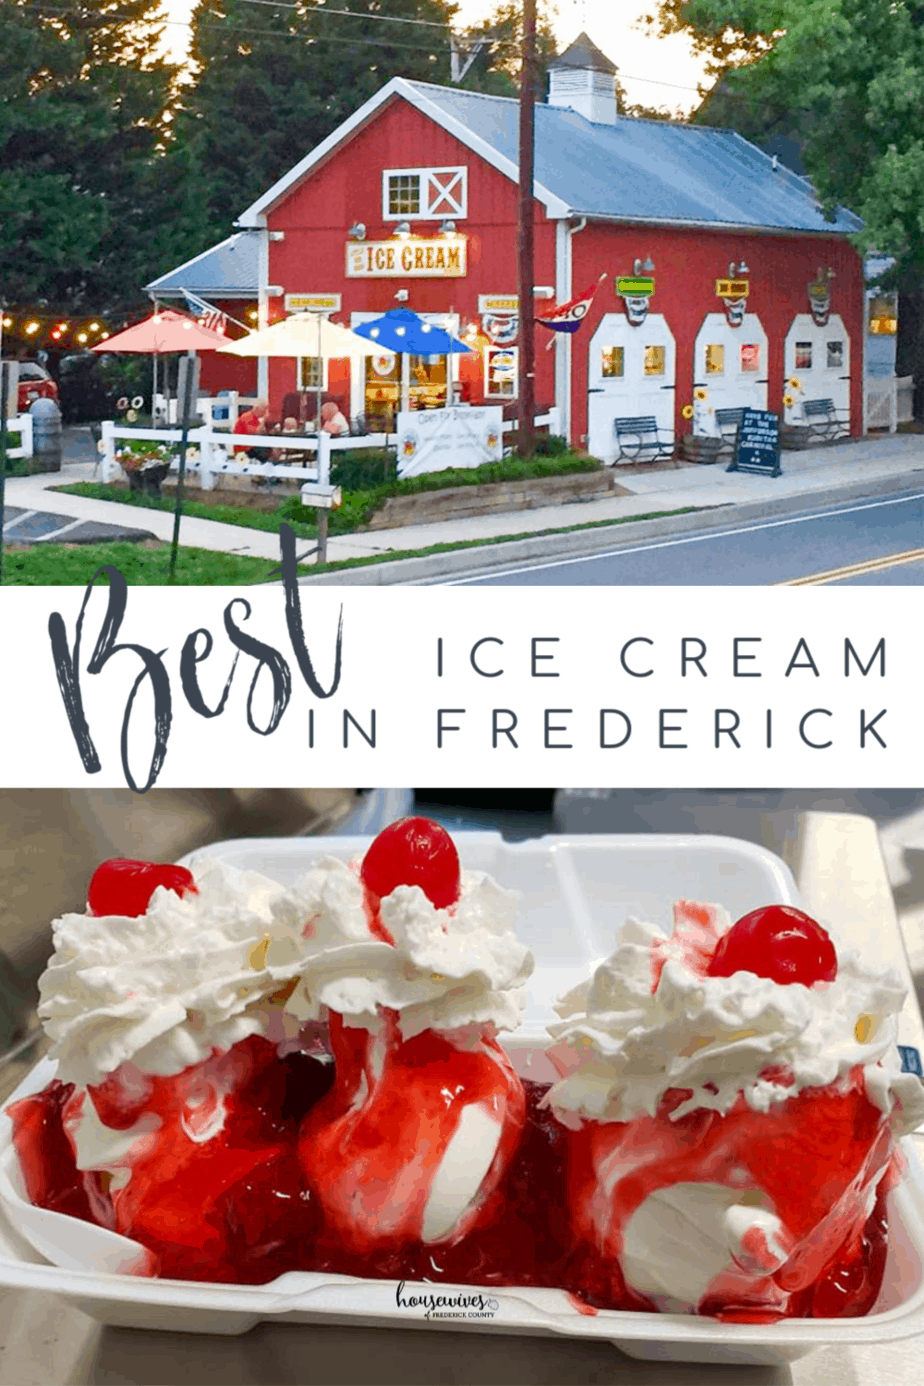 10 Best Ice Cream Places in Frederick County Maryland